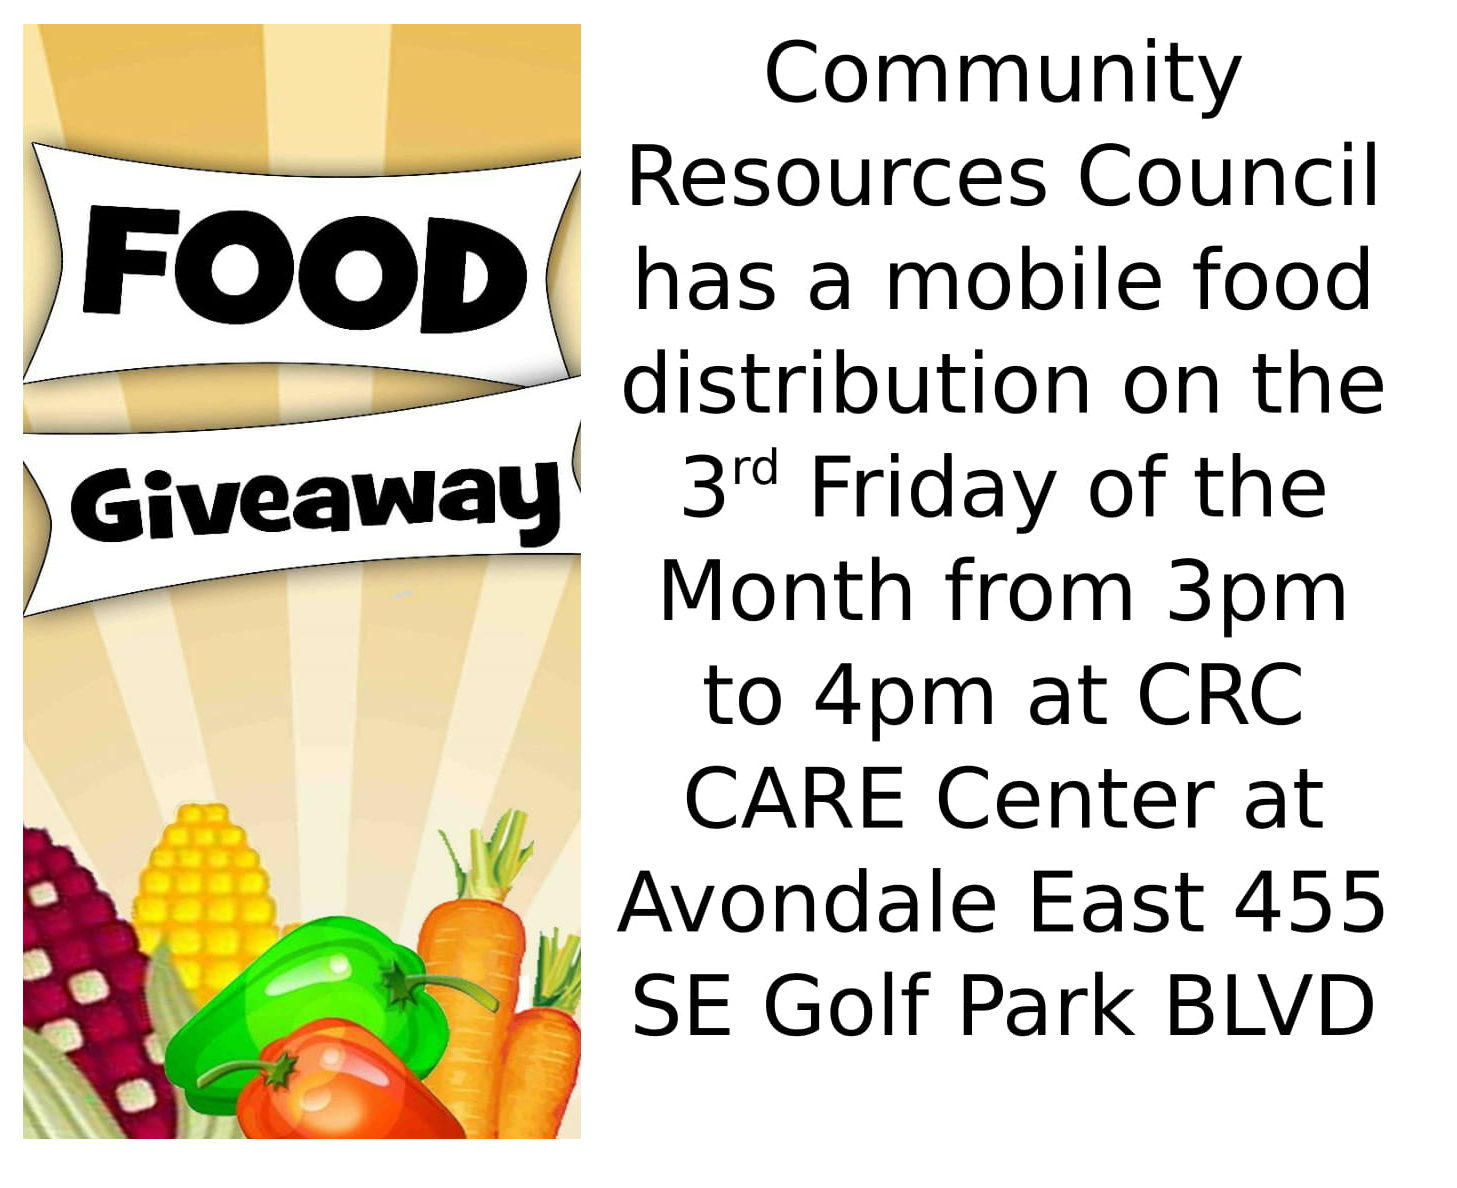 Community Resources Council - Mobile Food Pantry